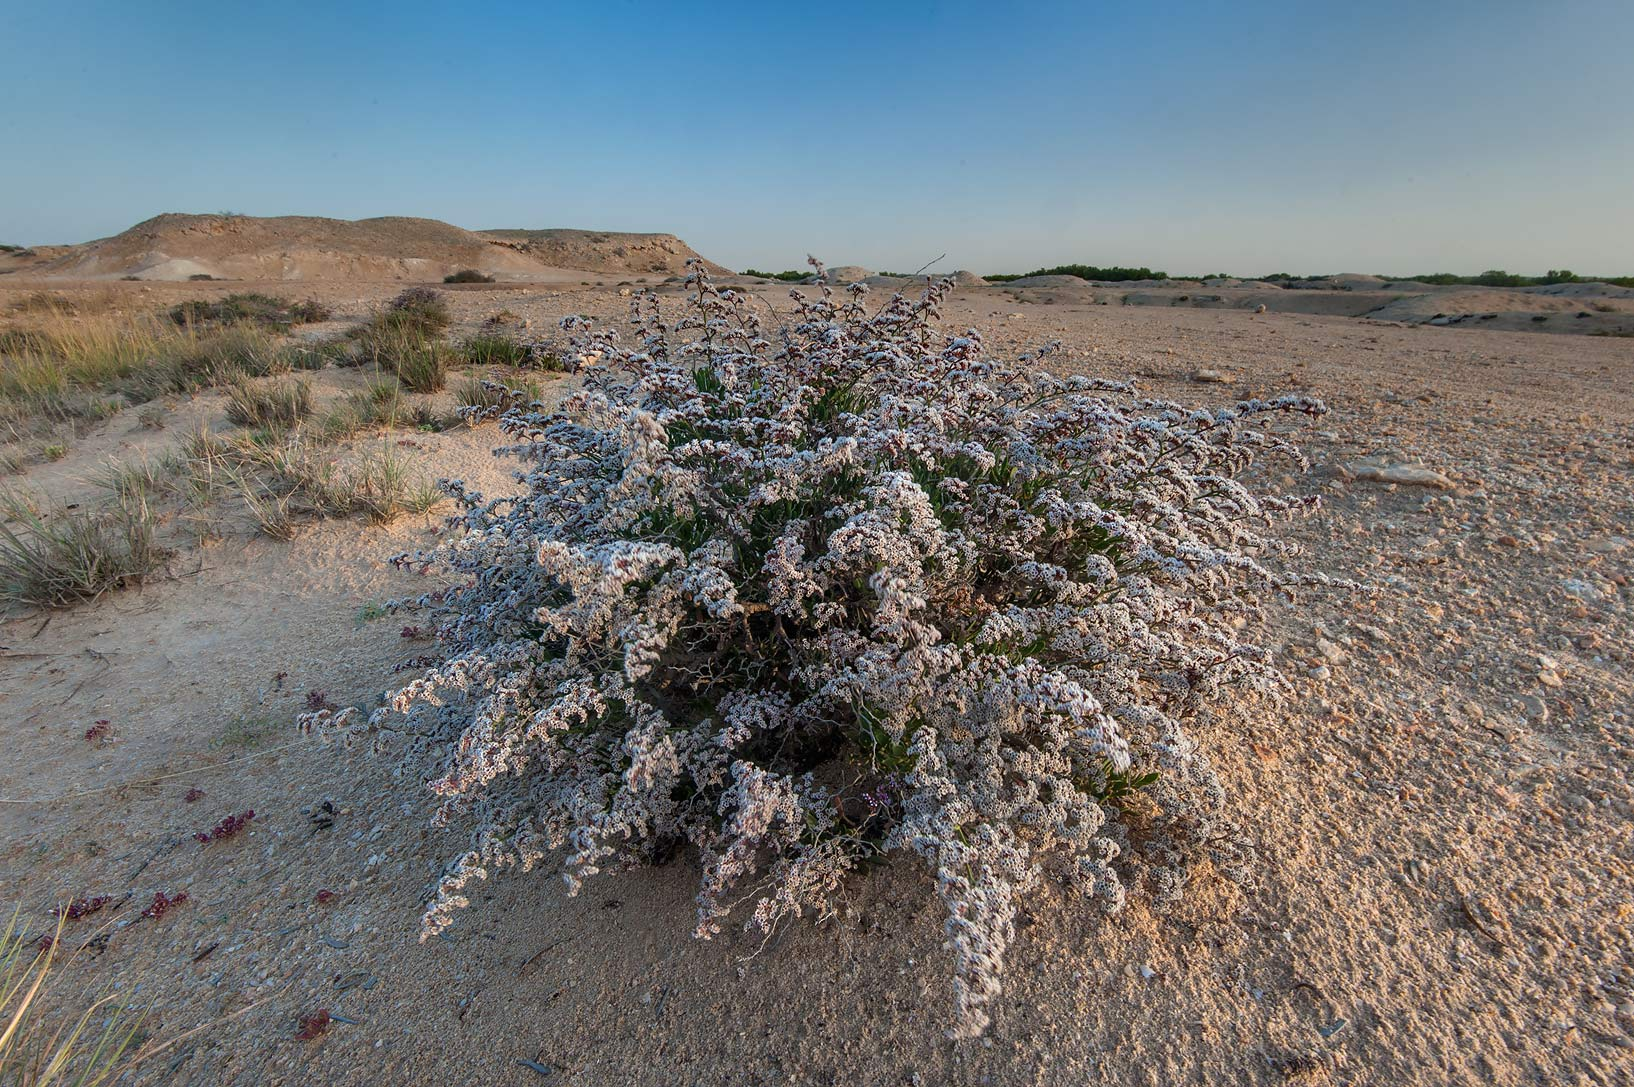 White flower bracts of sea lavender (Qetaif...Jazirat Bin Ghanim). Al Khor, Qatar